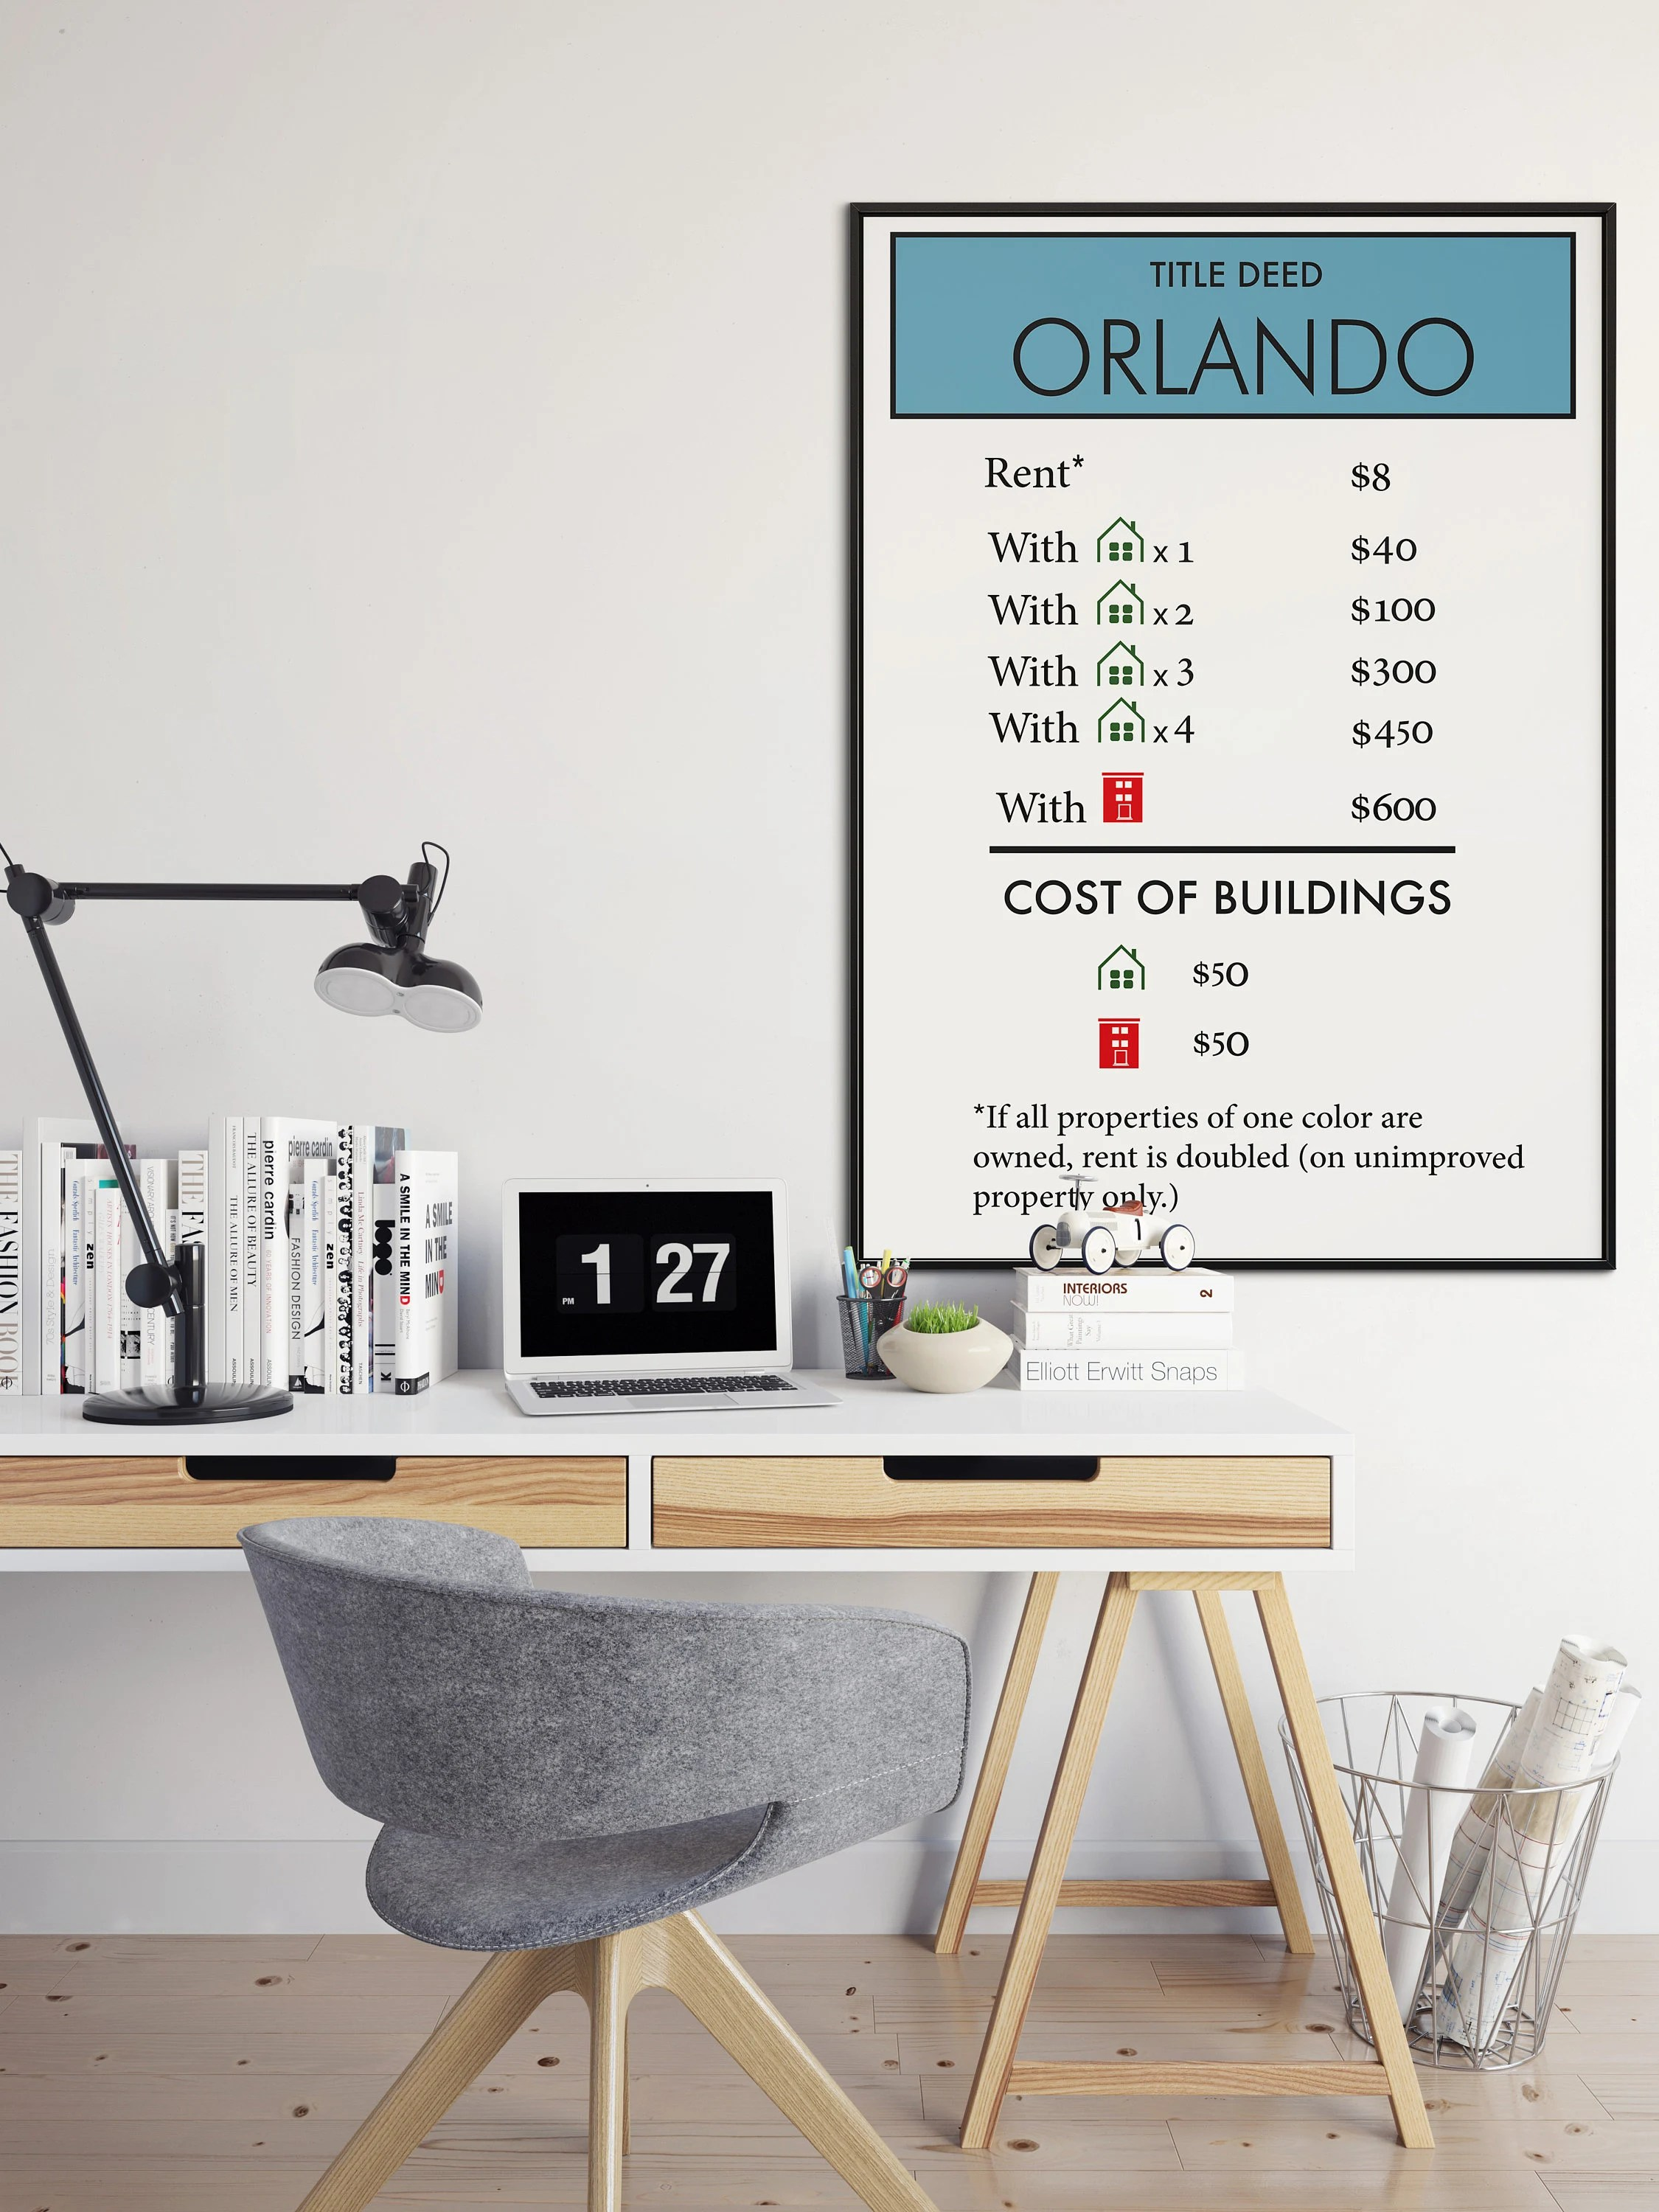 Wall Art Prints And Posters Orlado Poster Orlando Print Wall Art Prints Canvas Art Orlando Wall Art Wall Prints Wall Posters Christmas Gift Ideas Poster Art